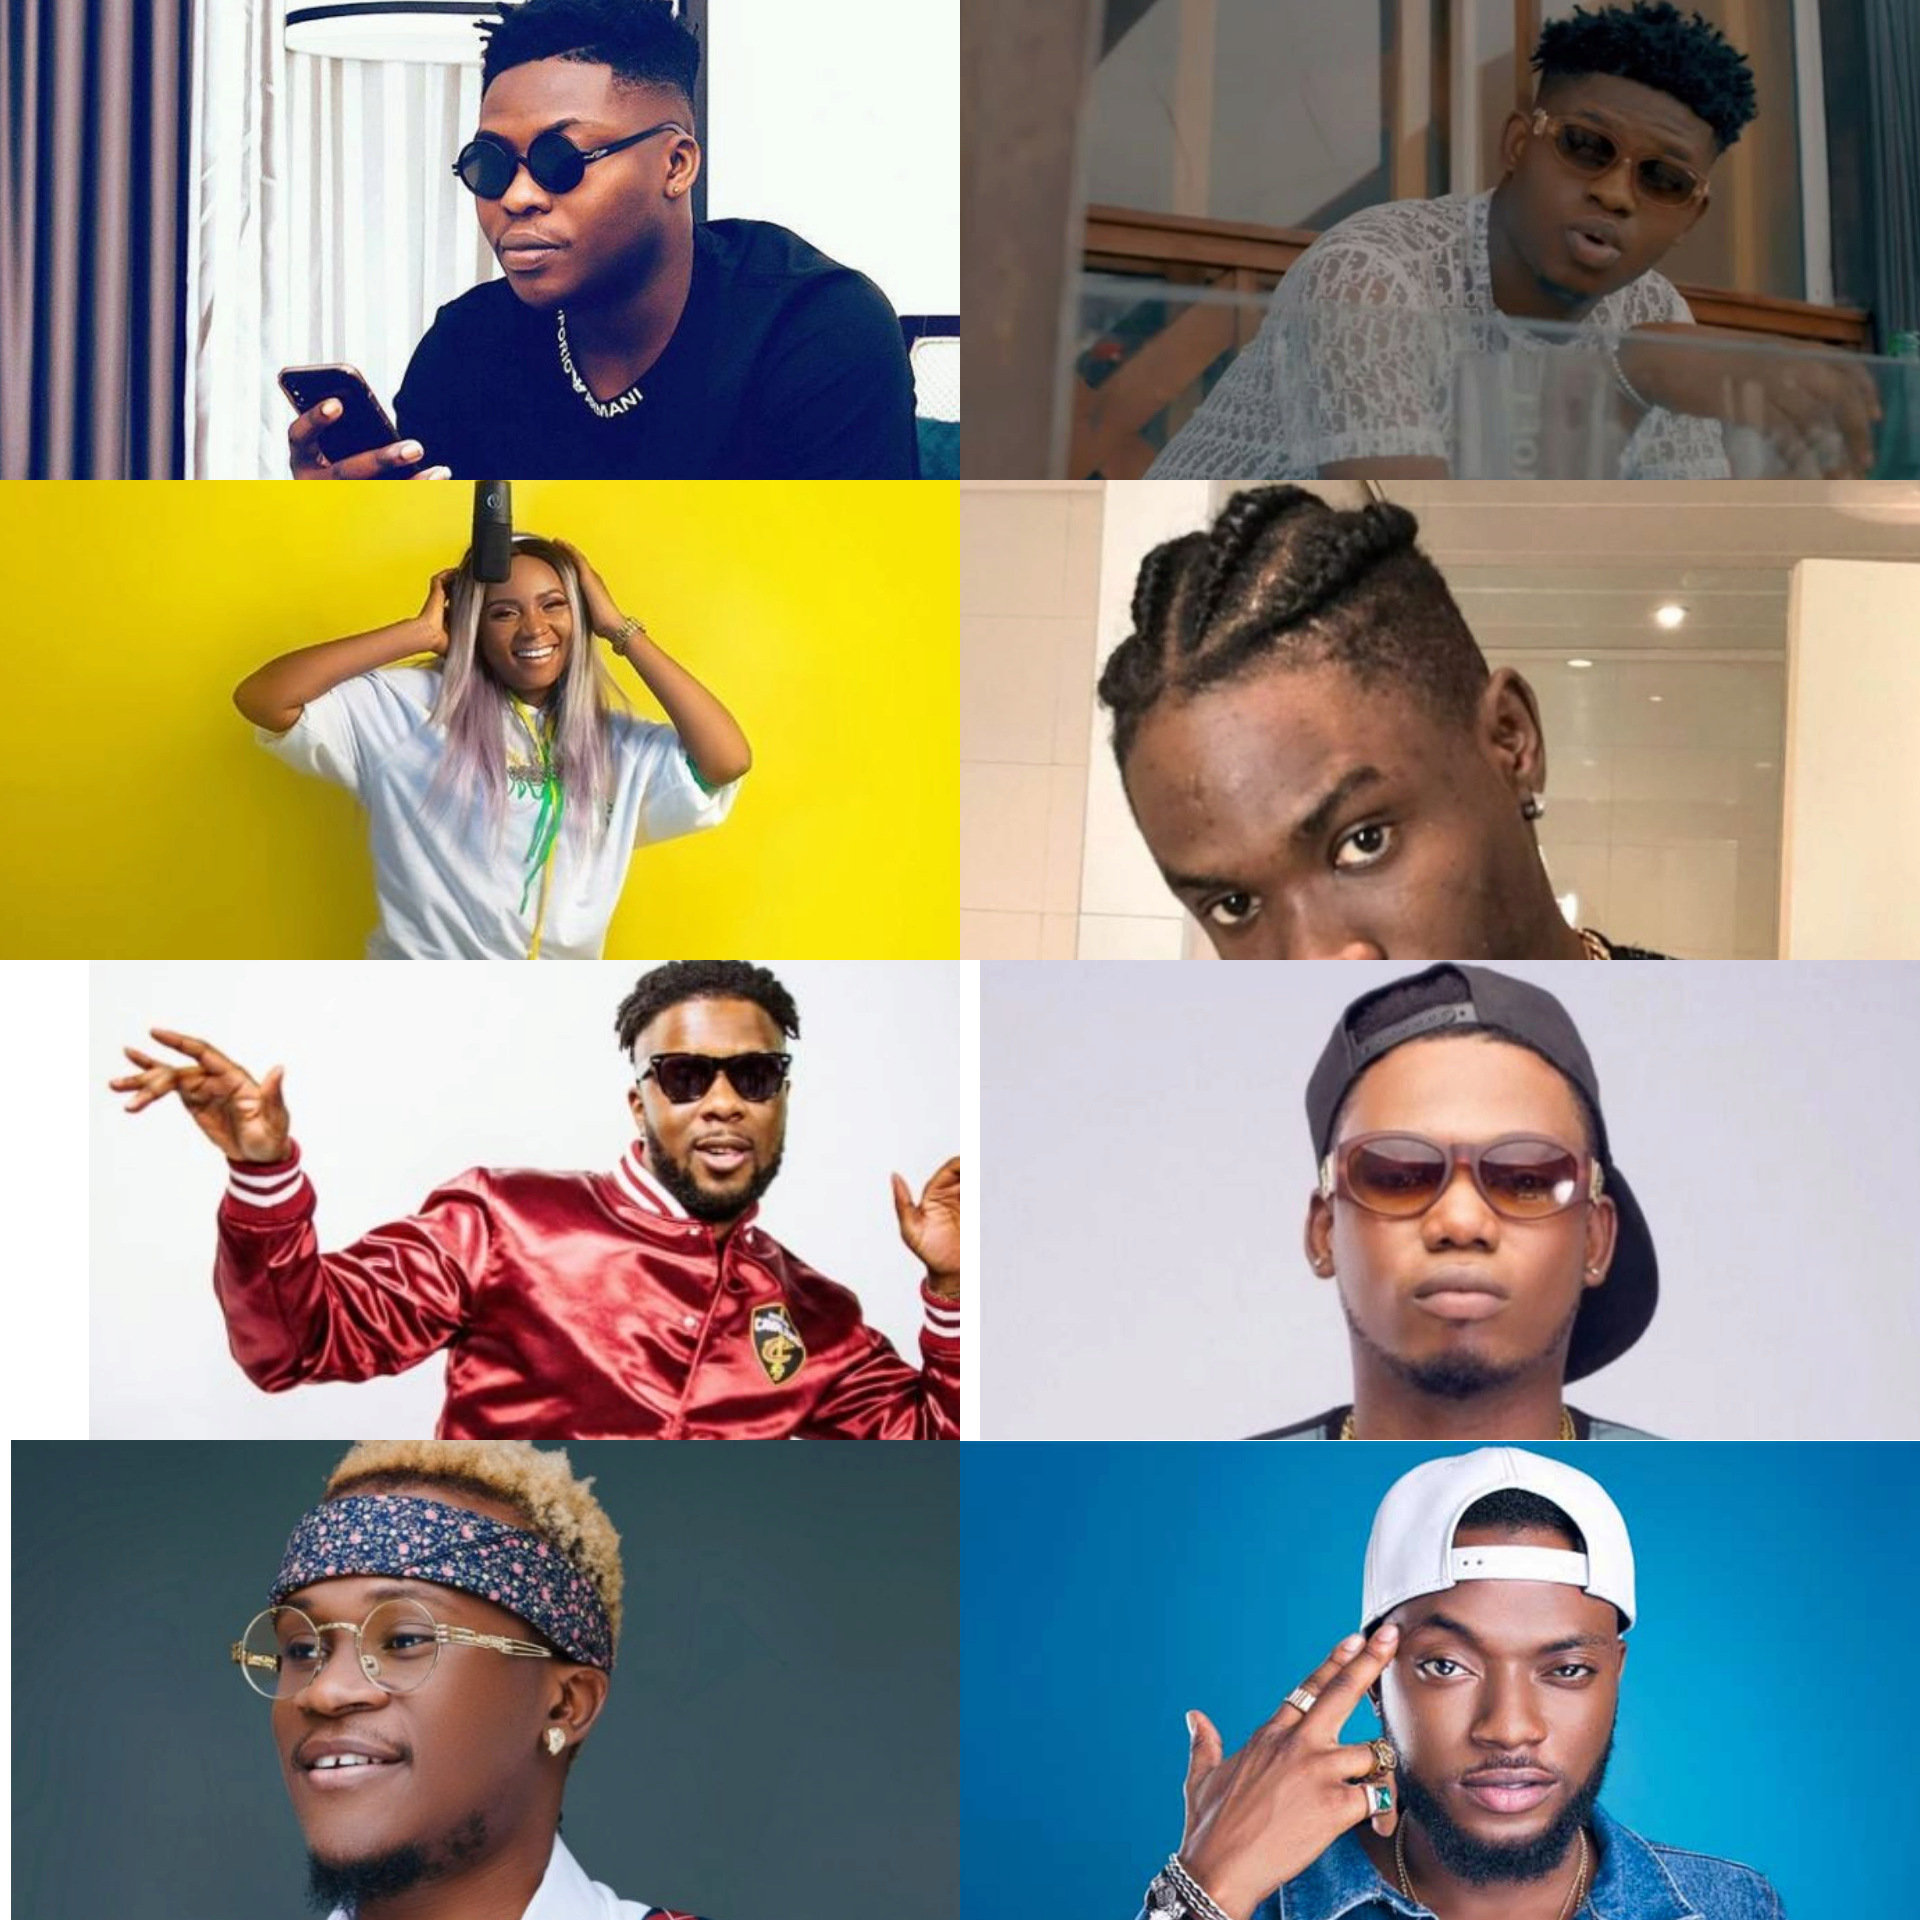 Top 10 Nigerian Artistes That Should Be Way Bigger Than The Level They Are Now Insho168